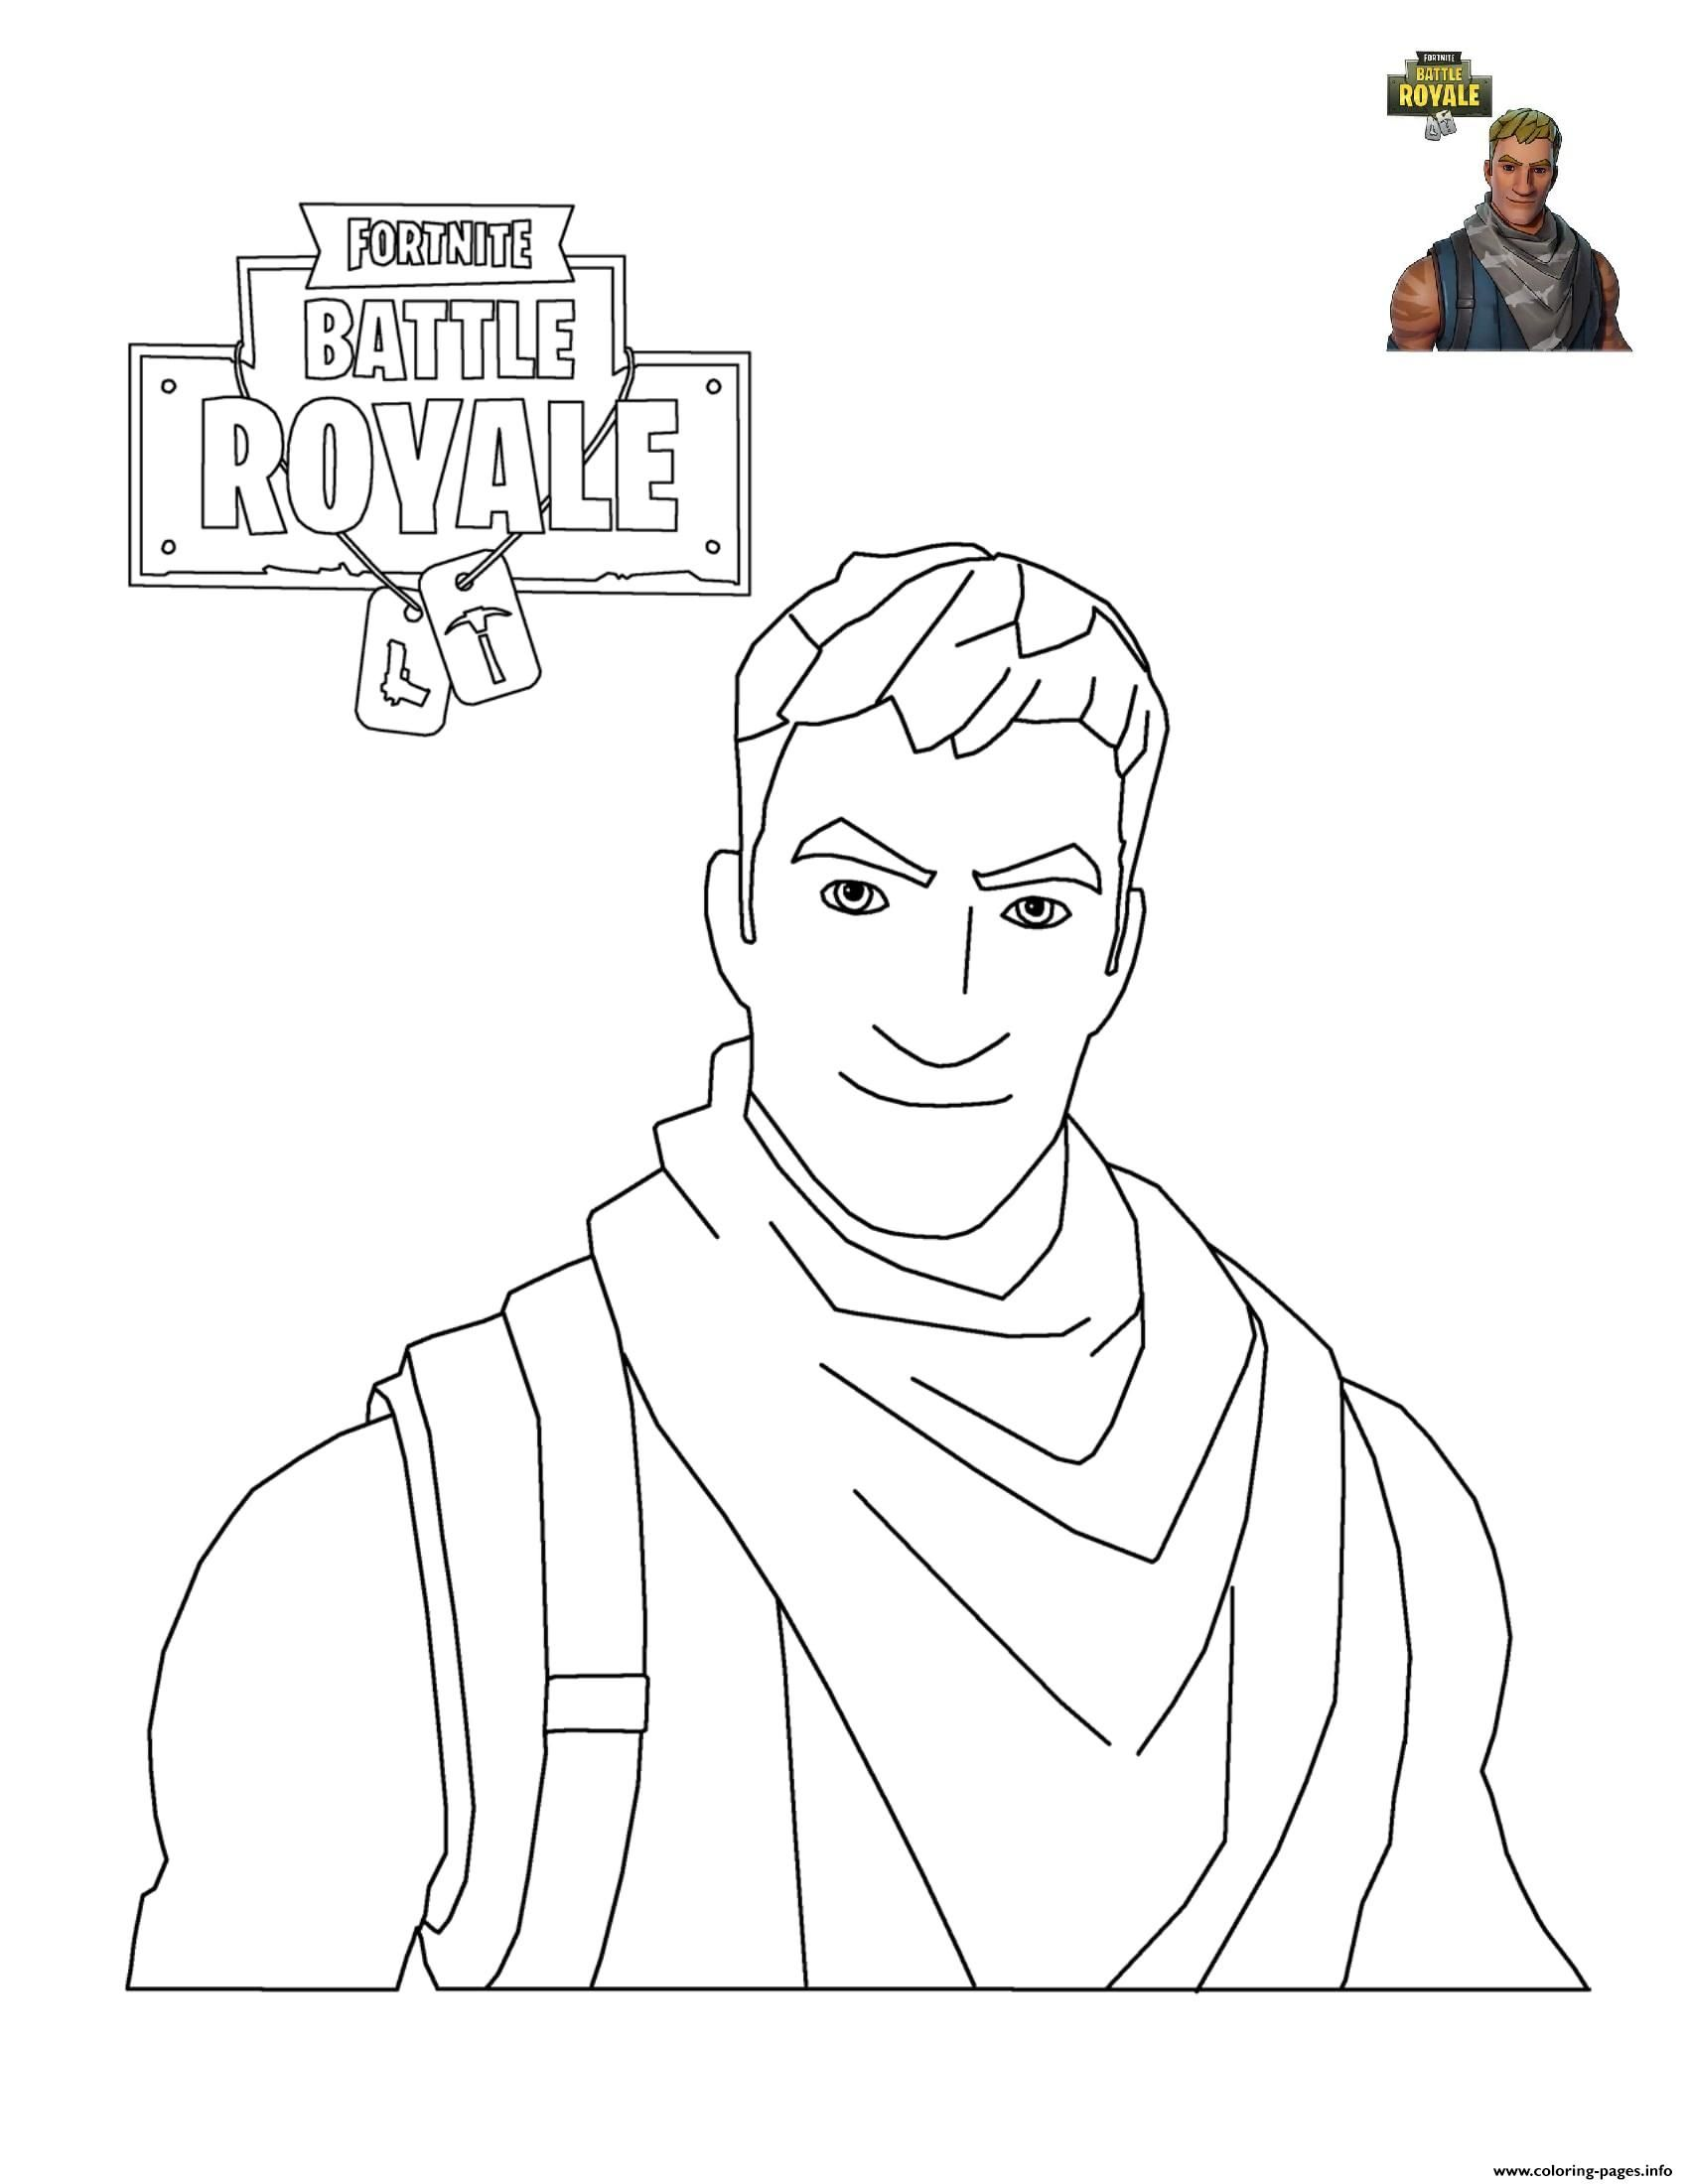 How To Draw Fortnight Characters Black And White